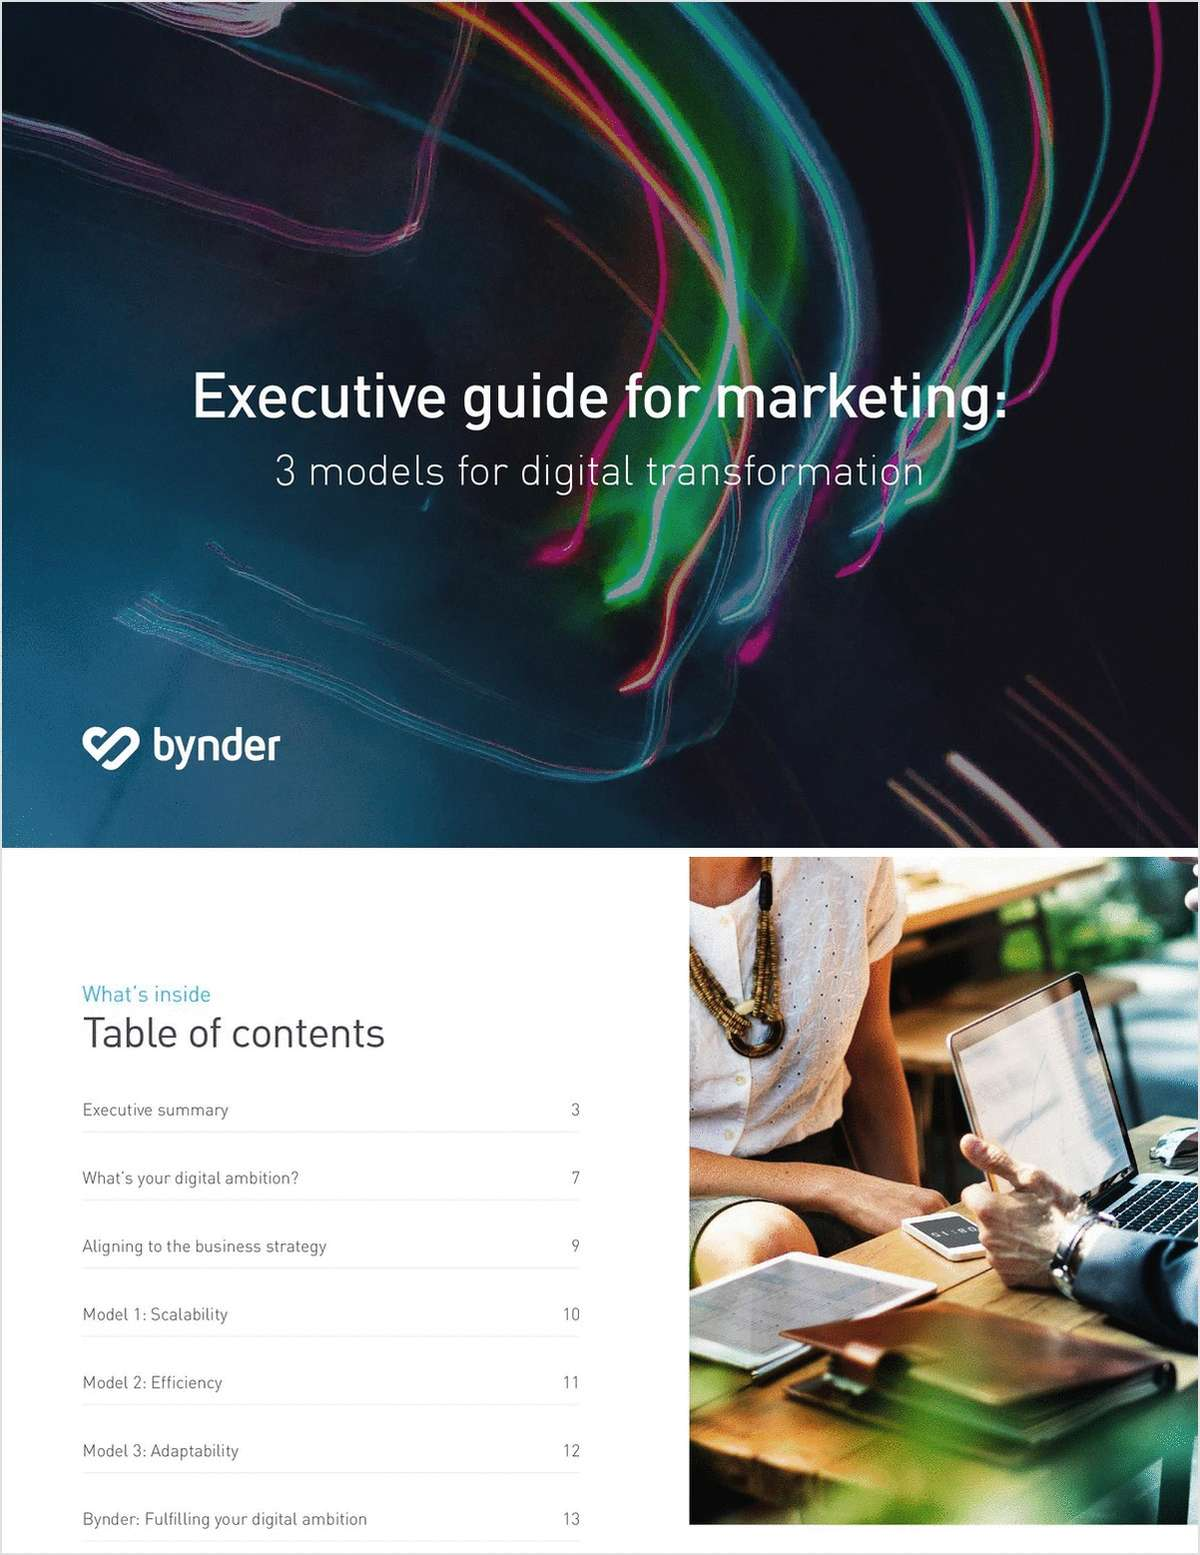 Executive Guide for Marketing: 3 Models for Digital Transformation